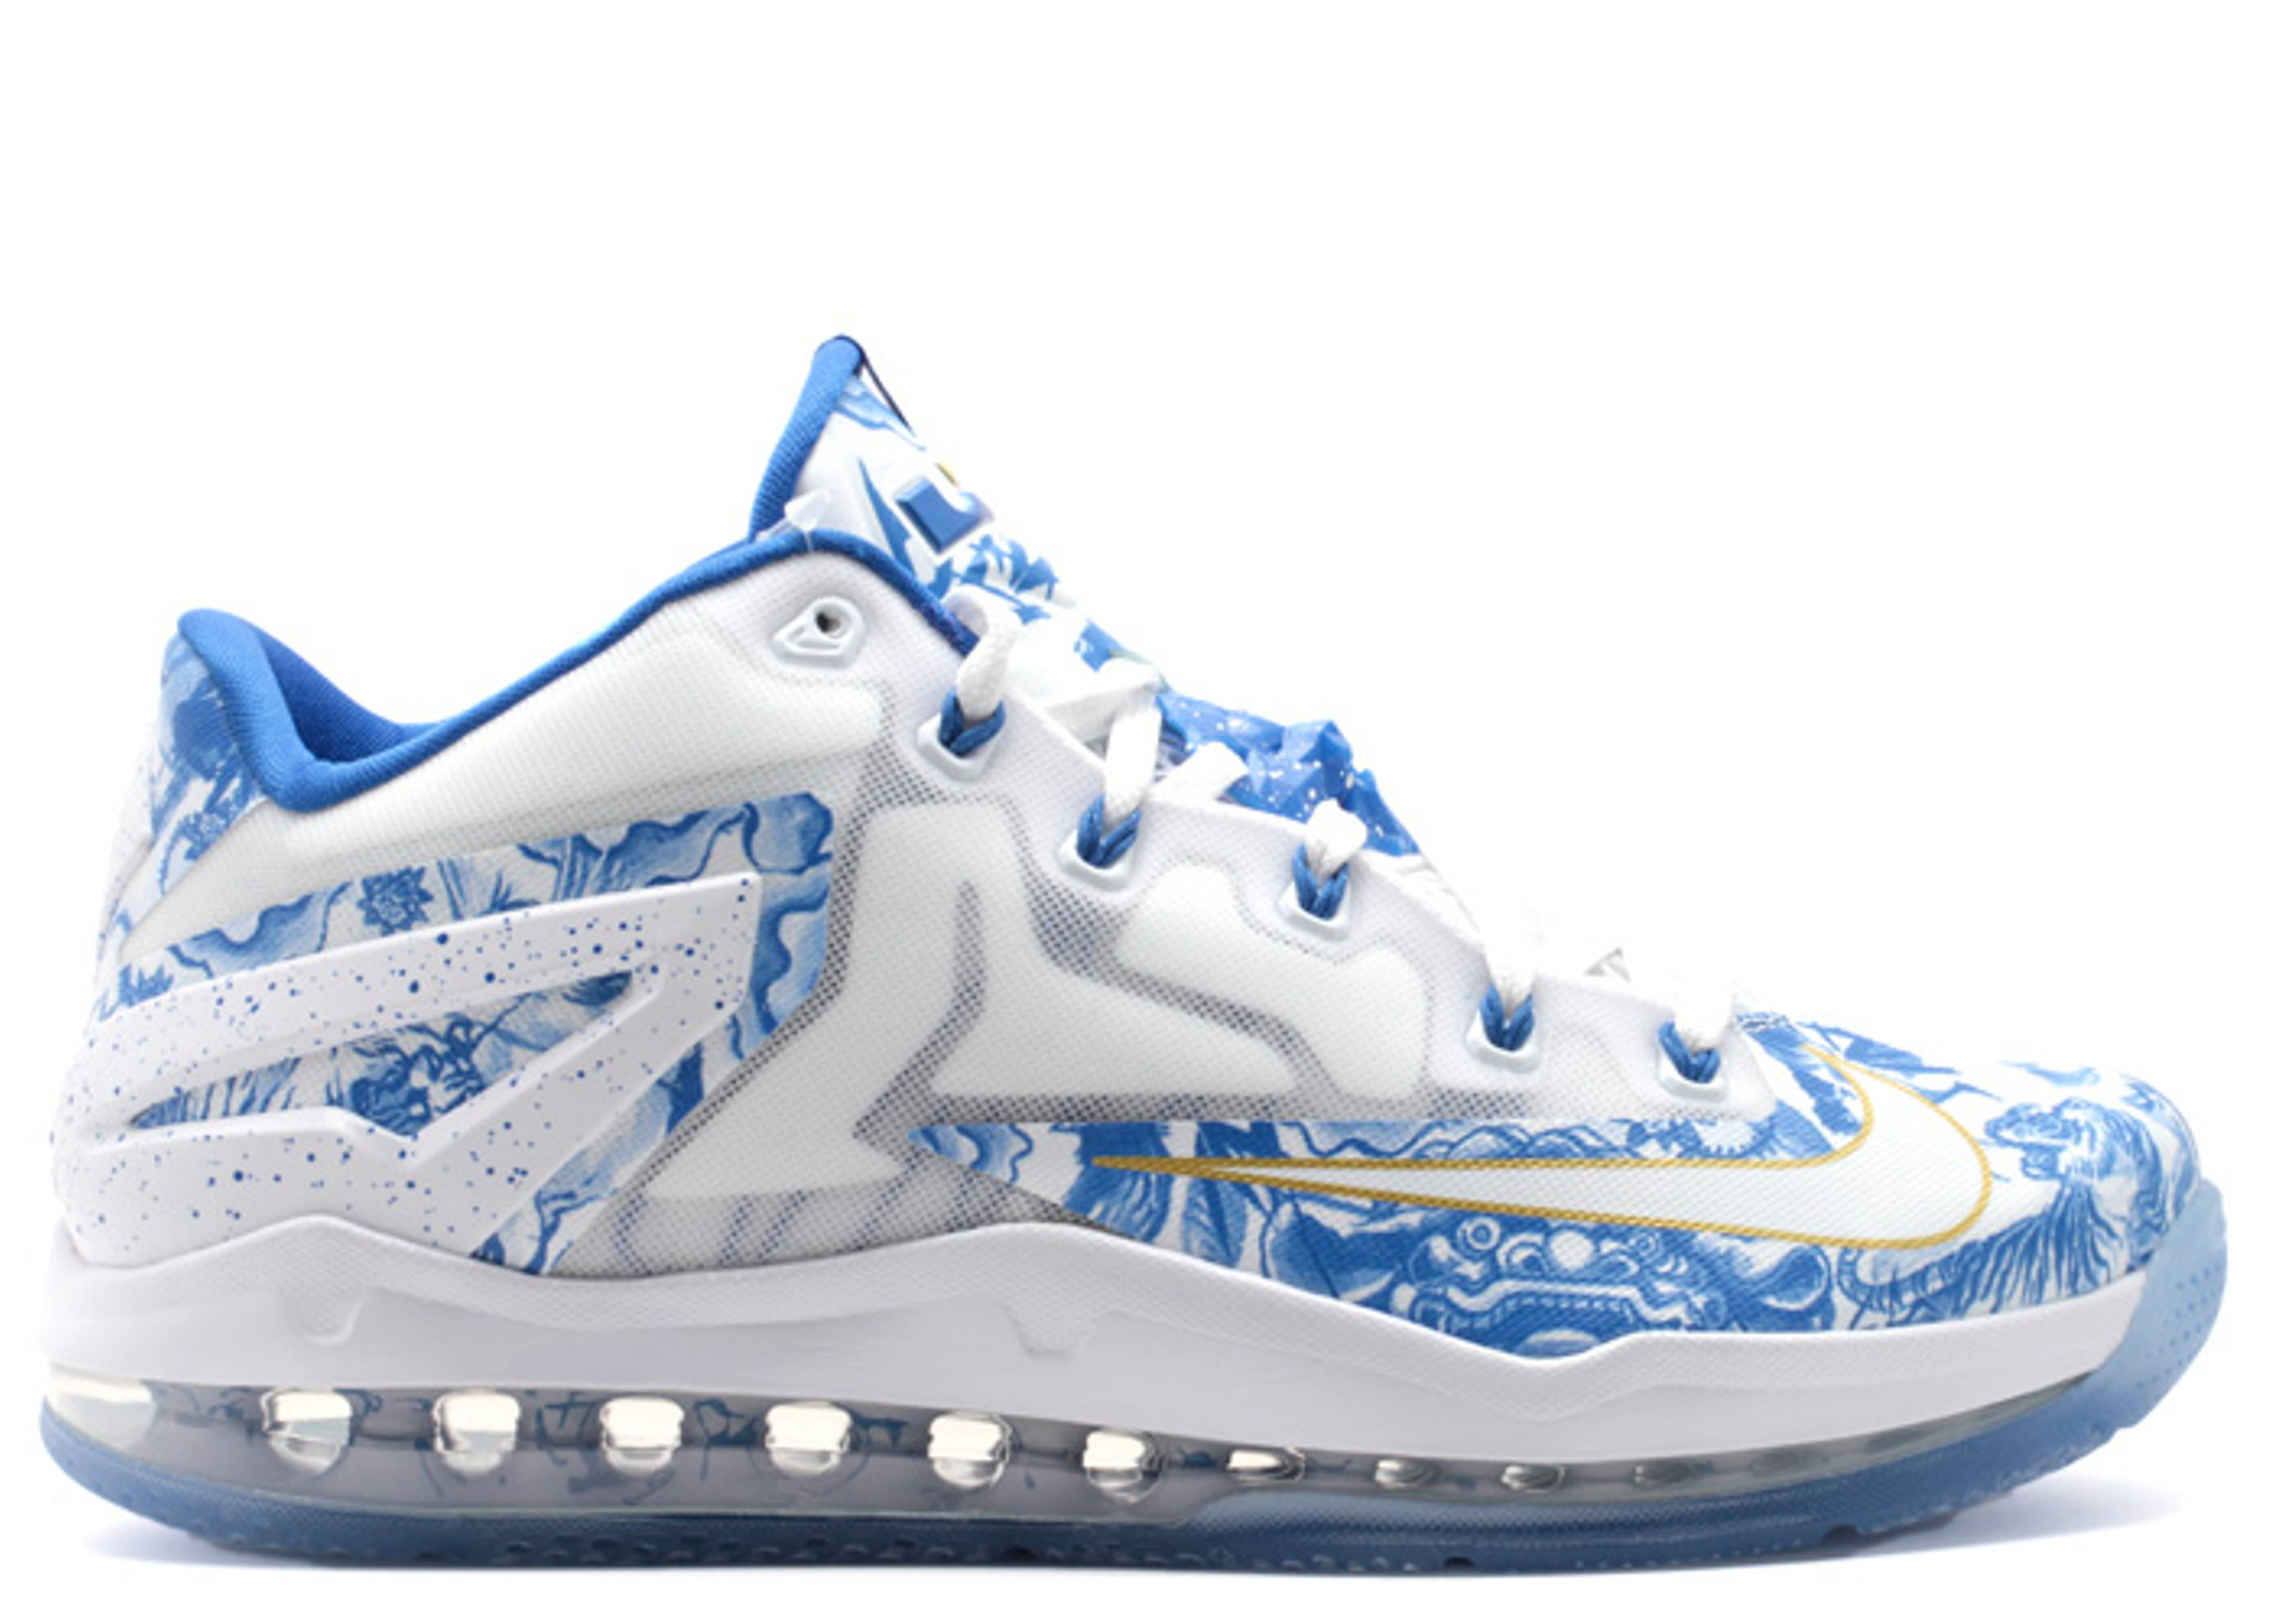 e71925794b84 Max Lebron 11 Low Ch Pack